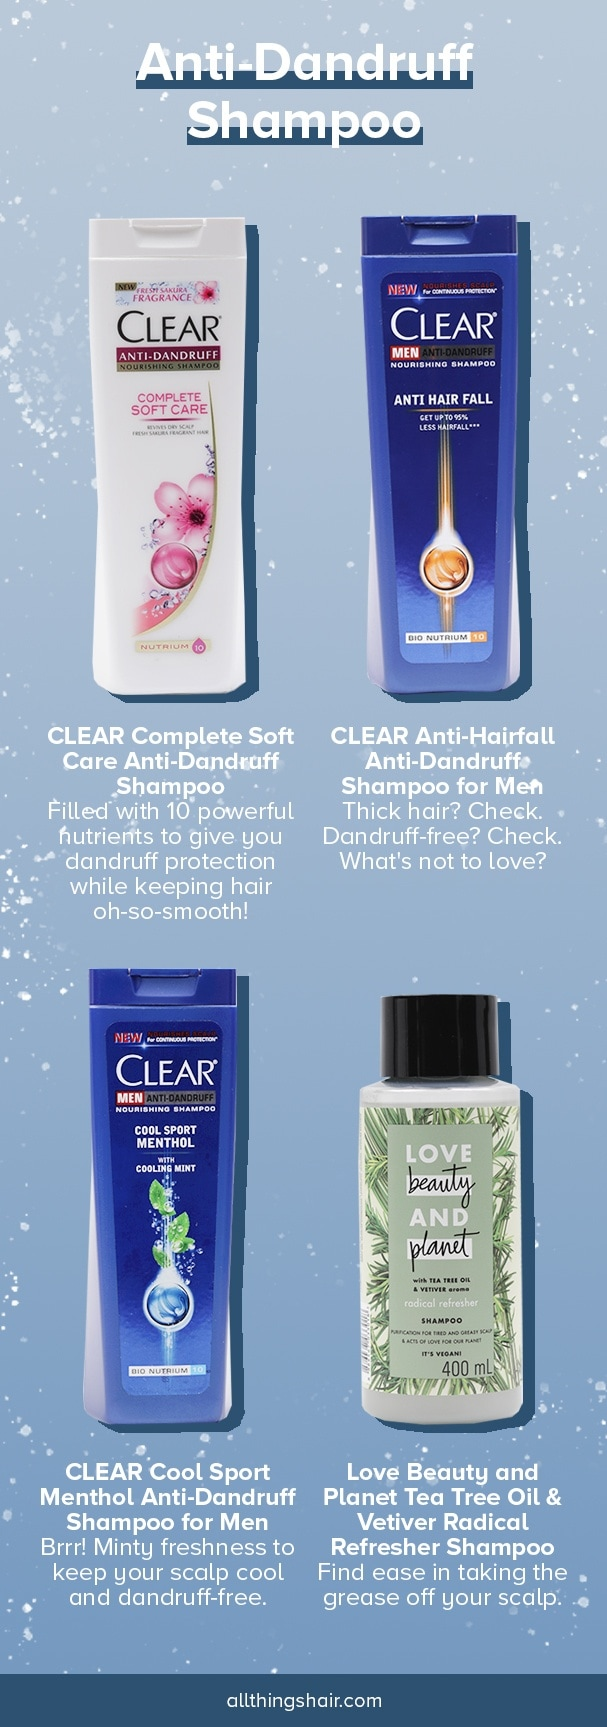 Infographic of anti-dandruff shampoos